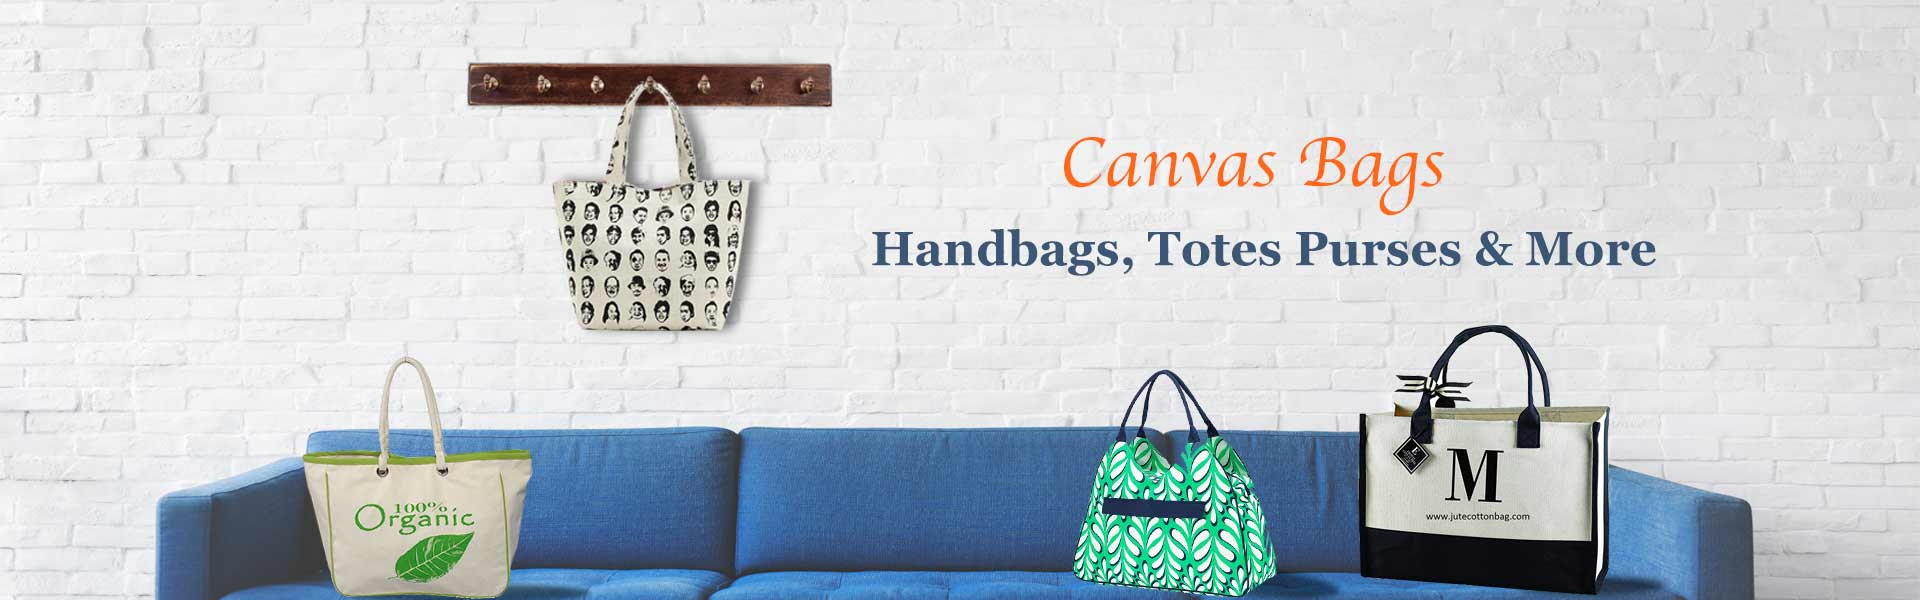 Wholesale Canvas Bags Supplier in Melbourne